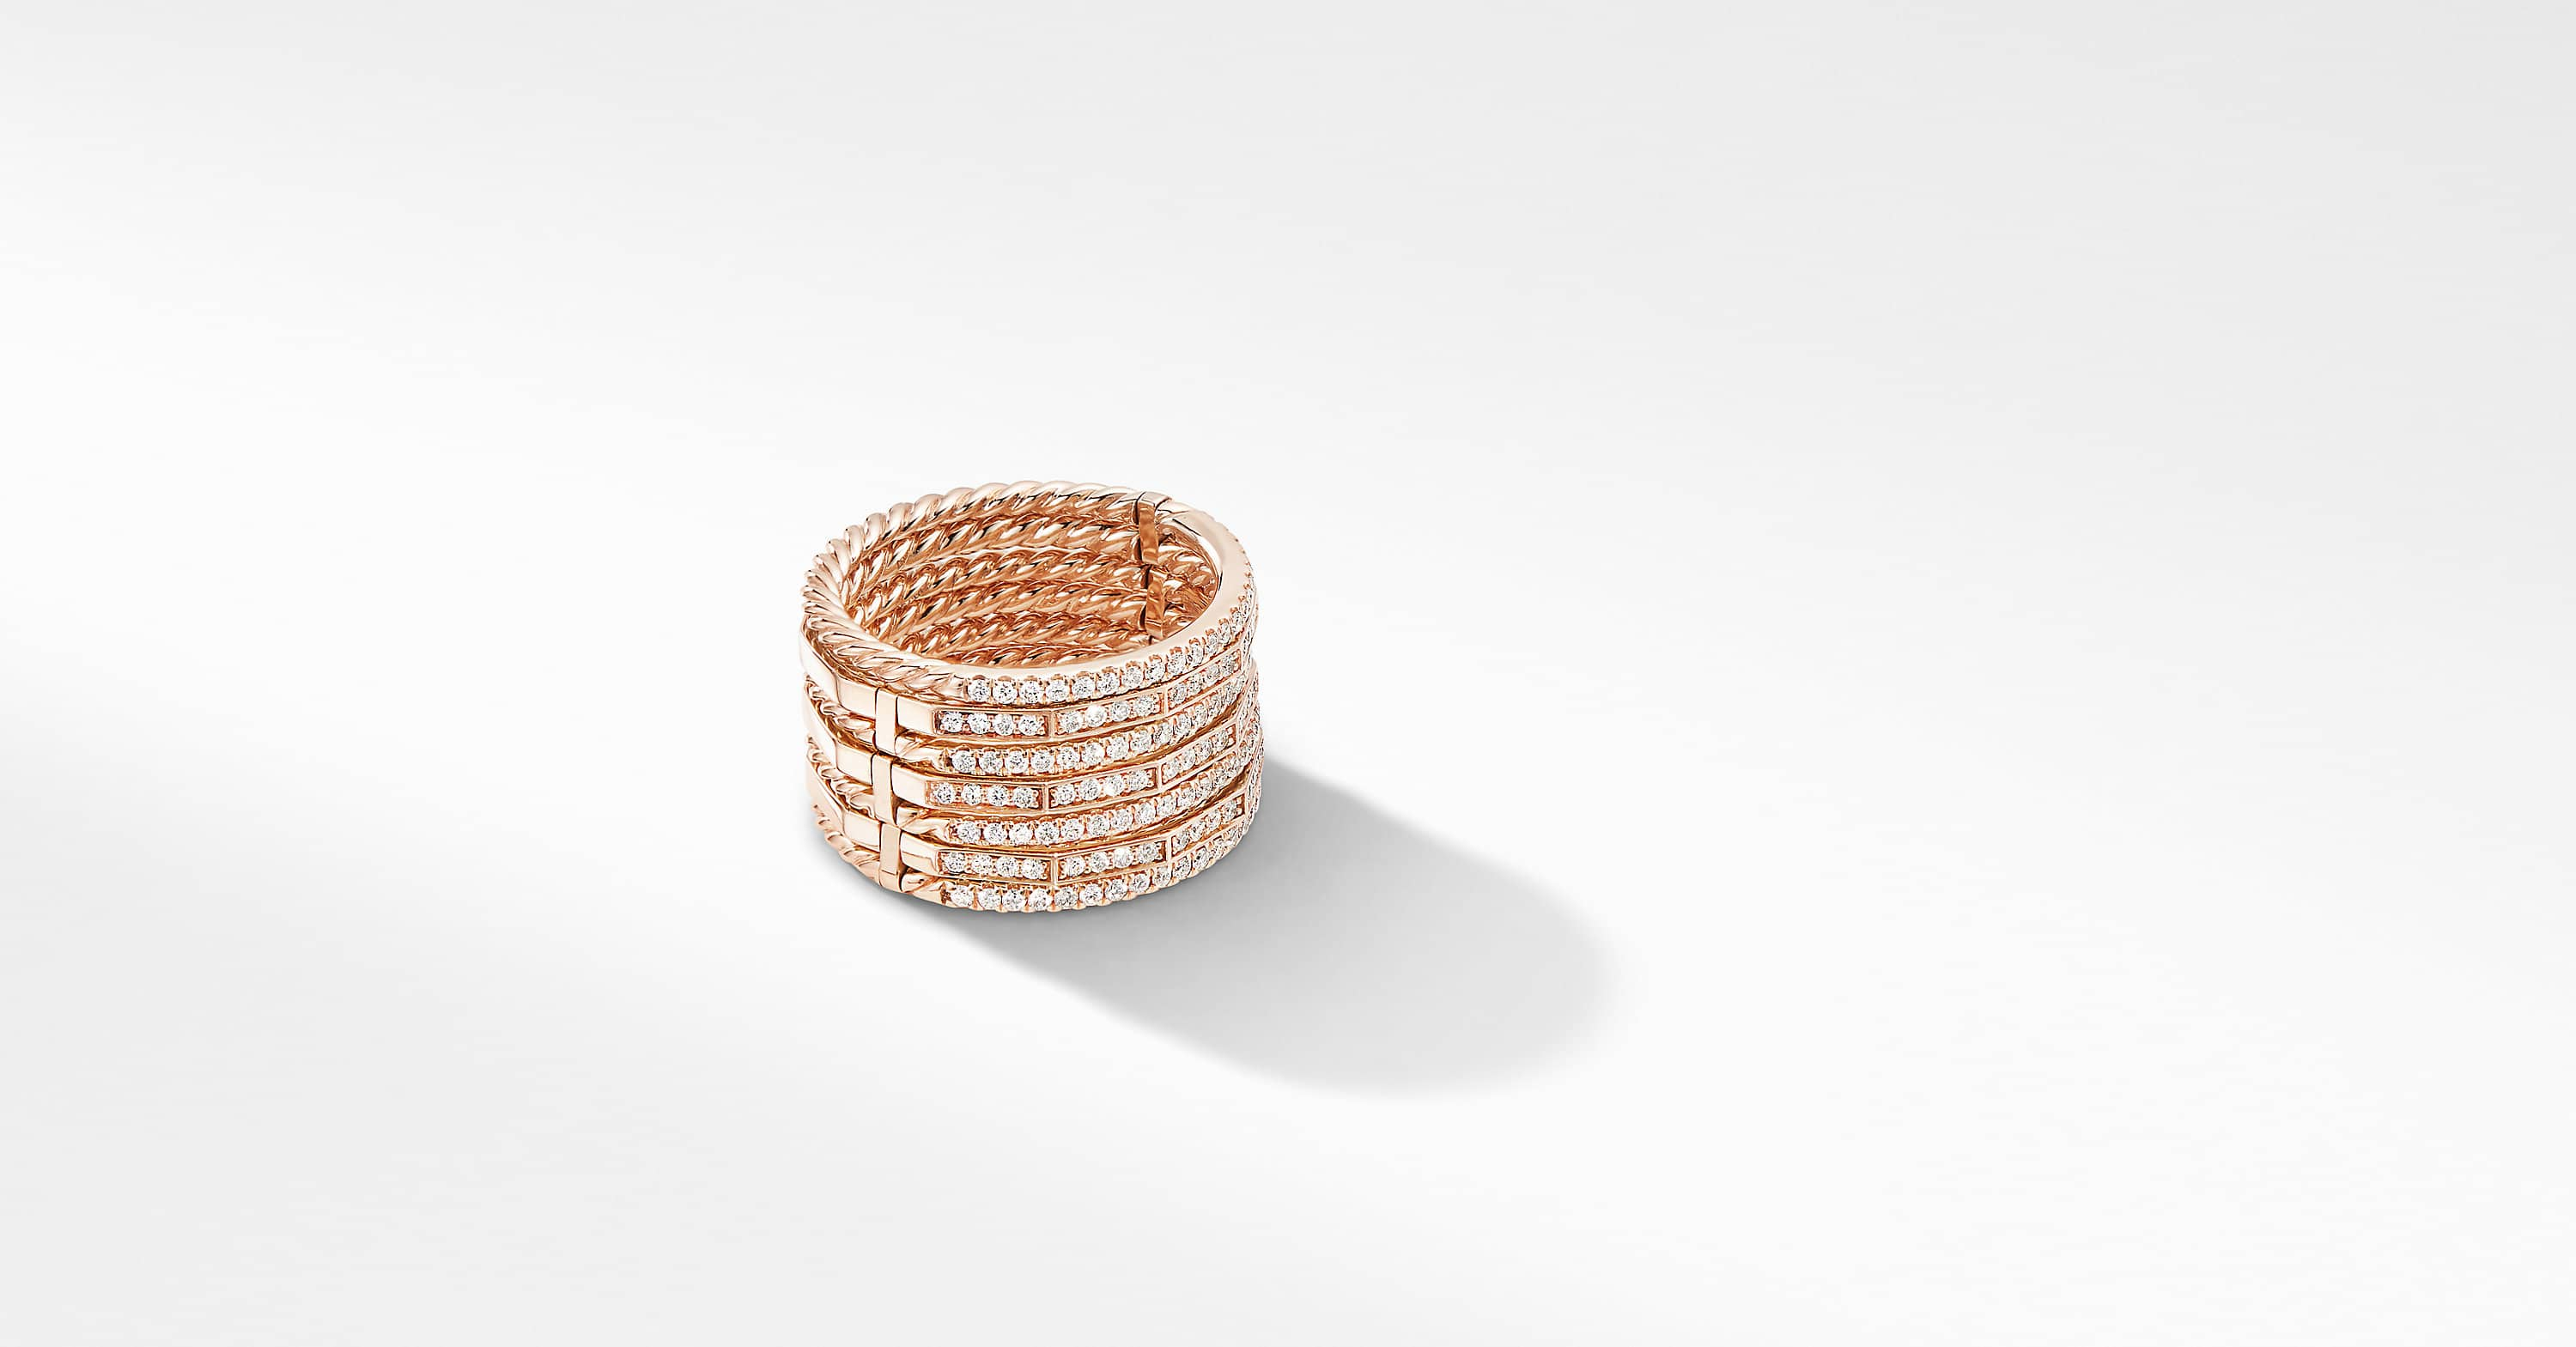 Stax Ring in 18K Rose Gold with Full Pavé